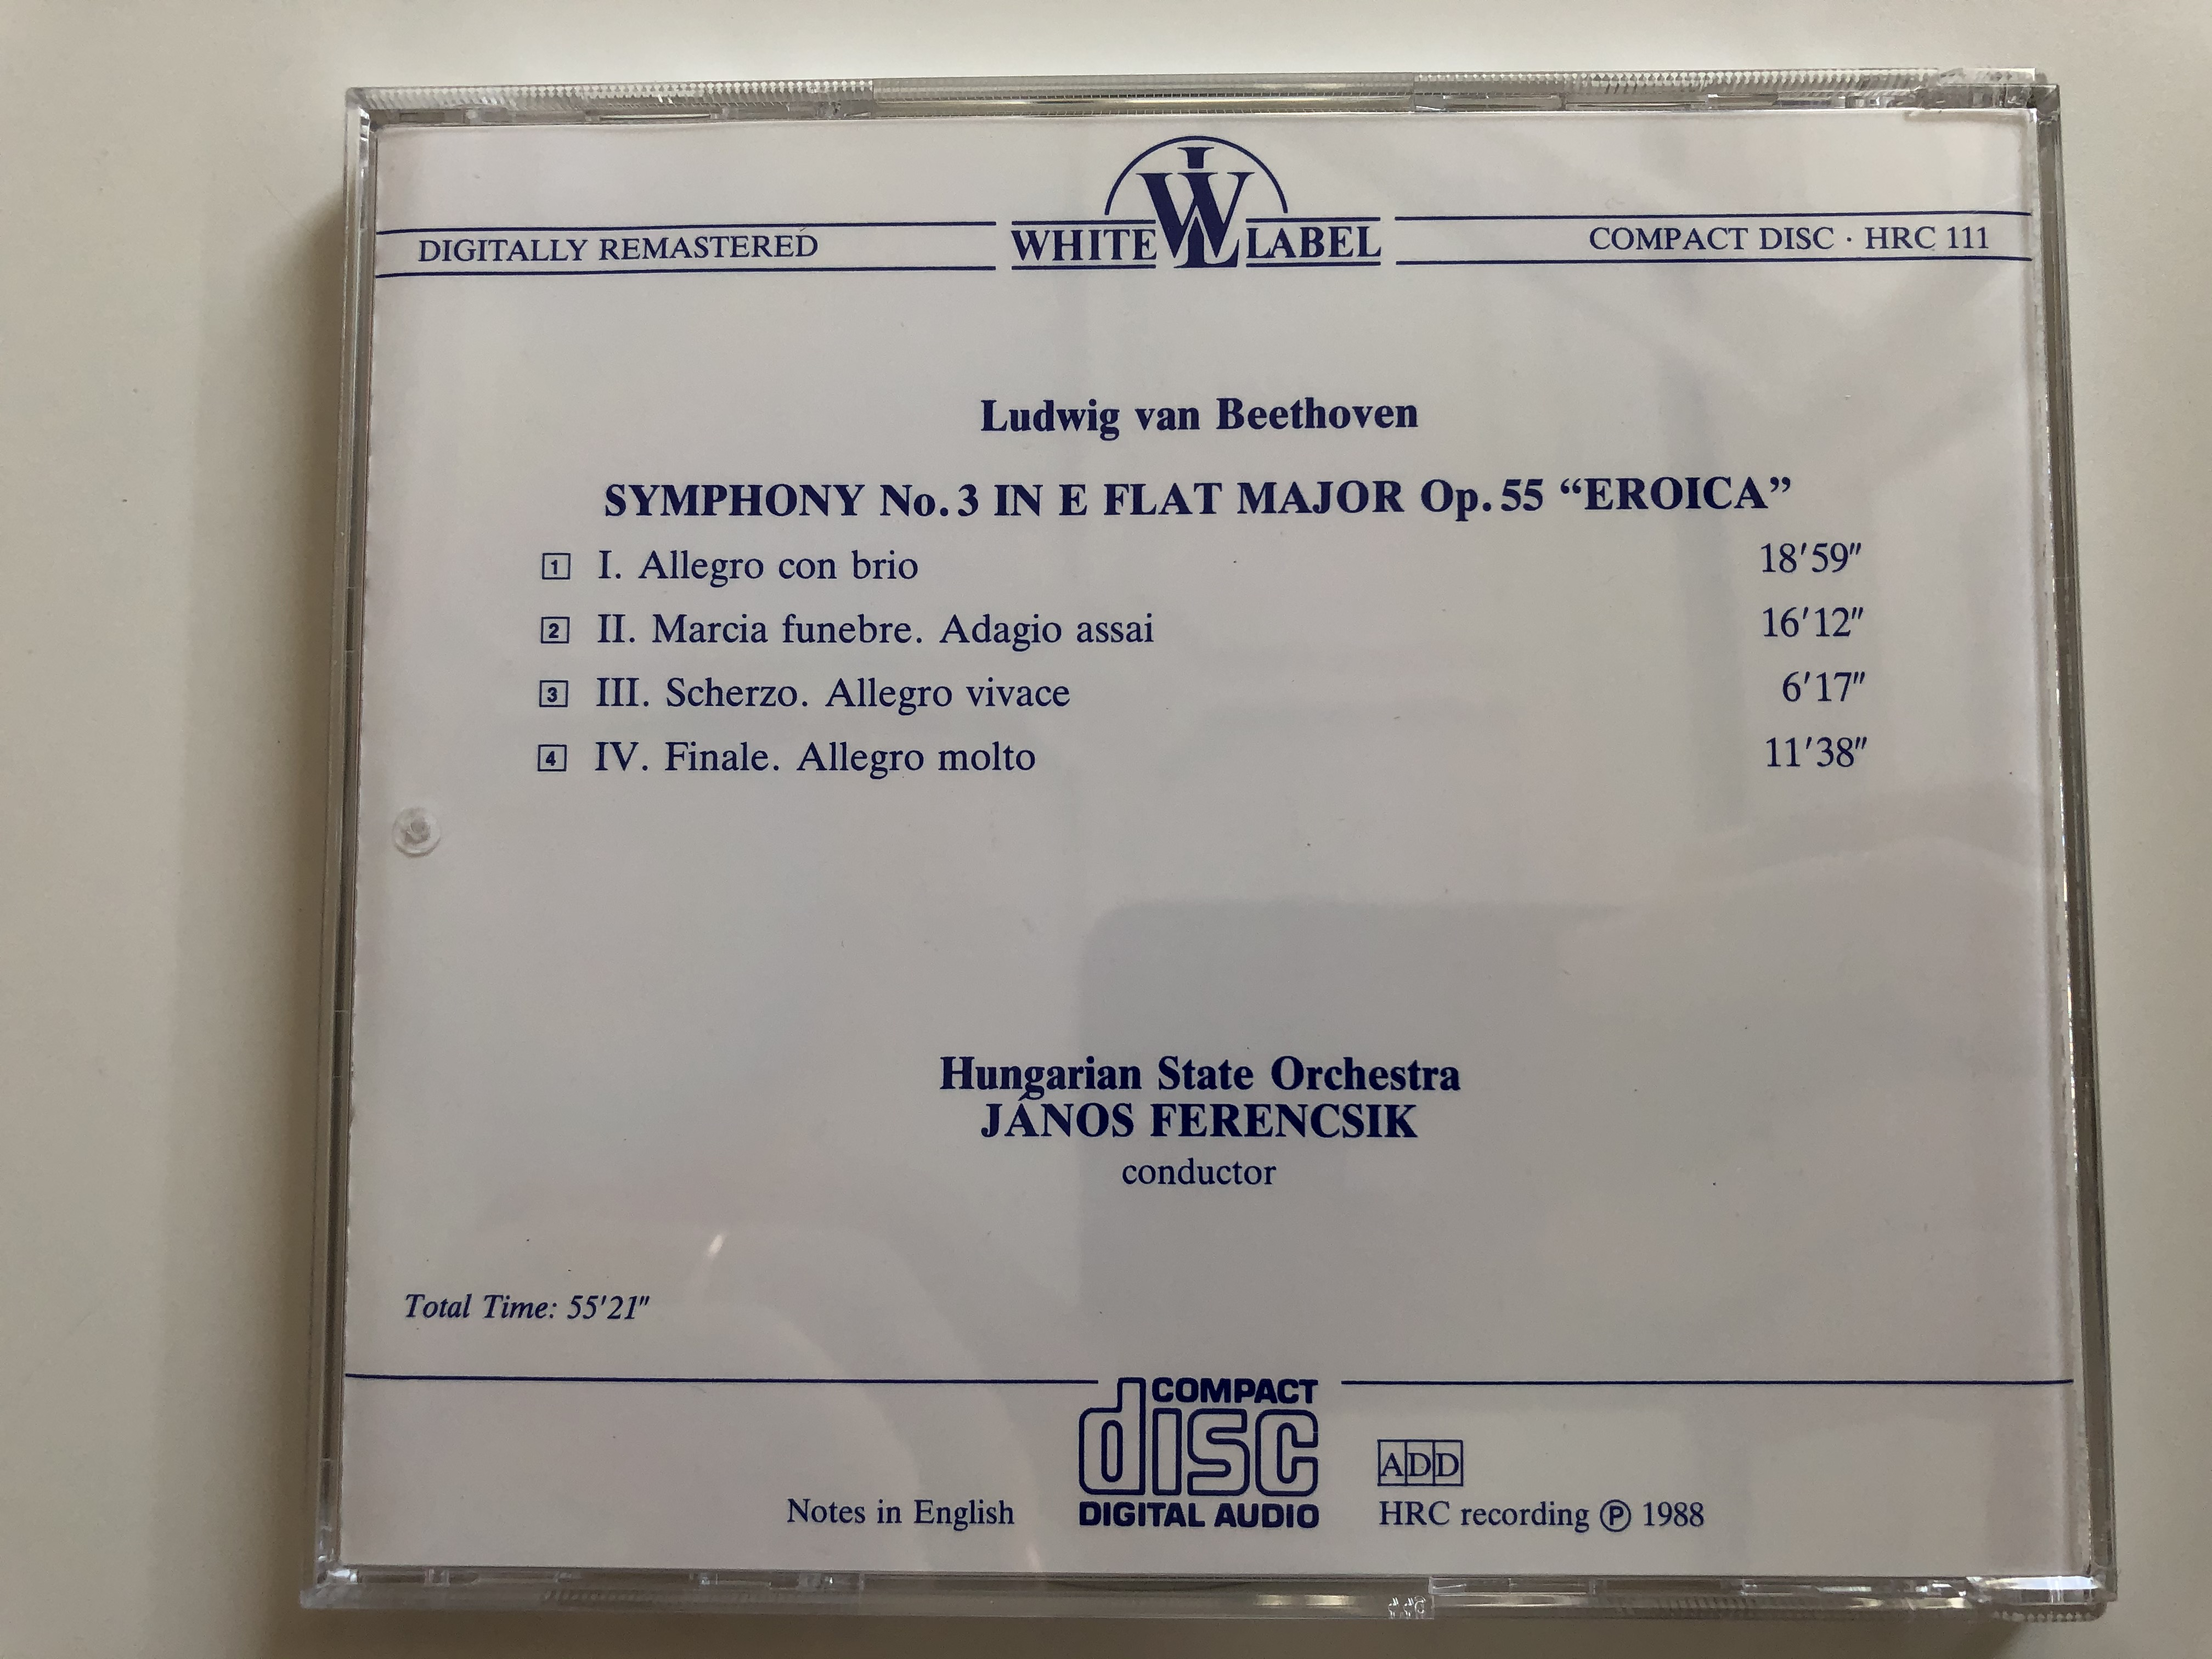 beethoven-symphony-no.-3-eroica-hungarian-state-orchestra-janos-ferencsik-white-label-audio-cd-1988-stereo-hrc-111-5-.jpg